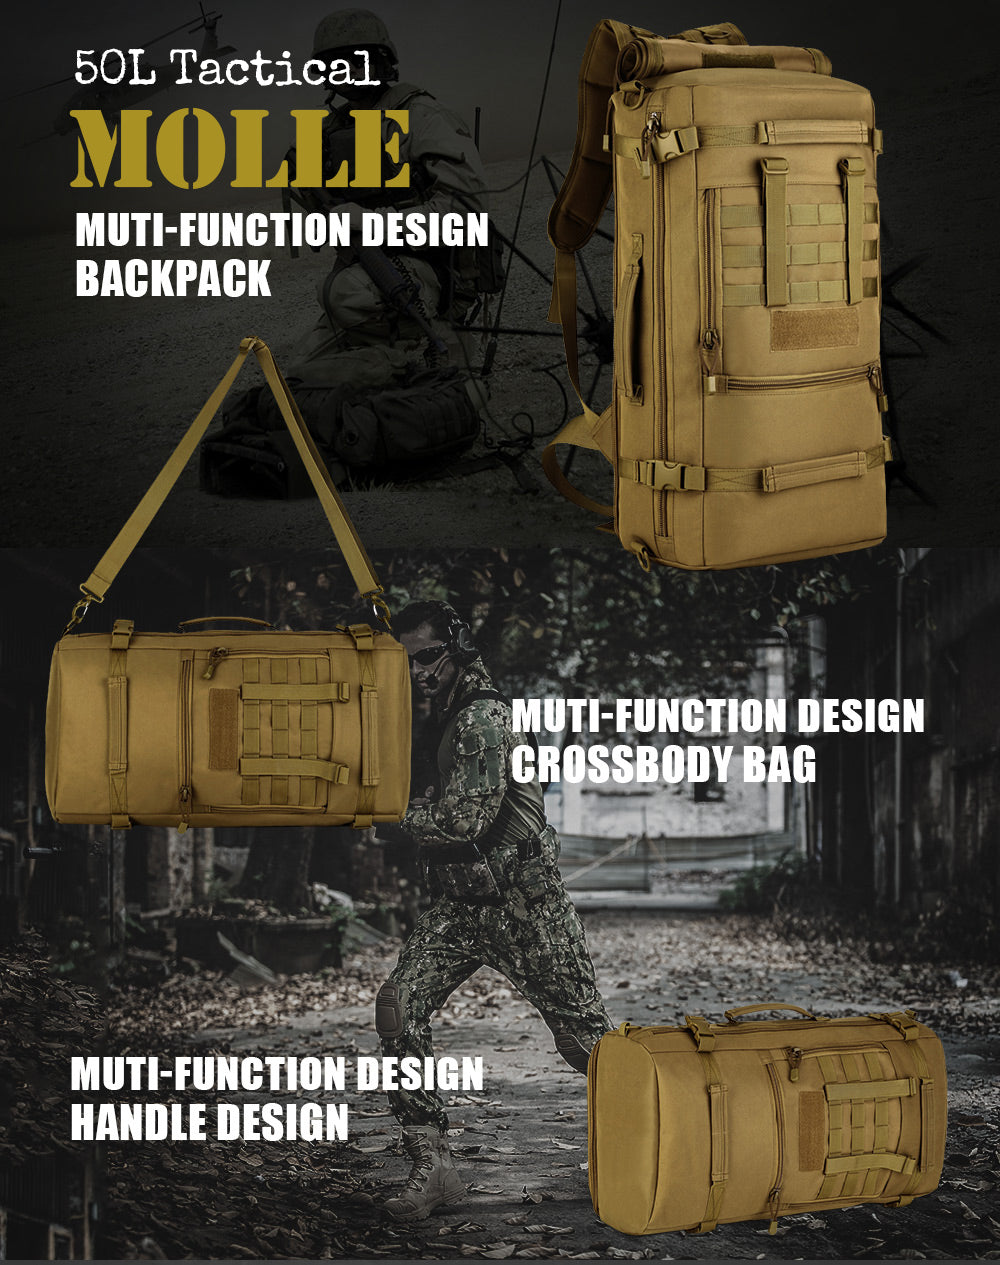 Military Tactical 50L Backpack Rucksack Multi-Function Crossbody Shoulder Bag For Hiking, Hunting, Trekking Travel - 5 Camo Colors